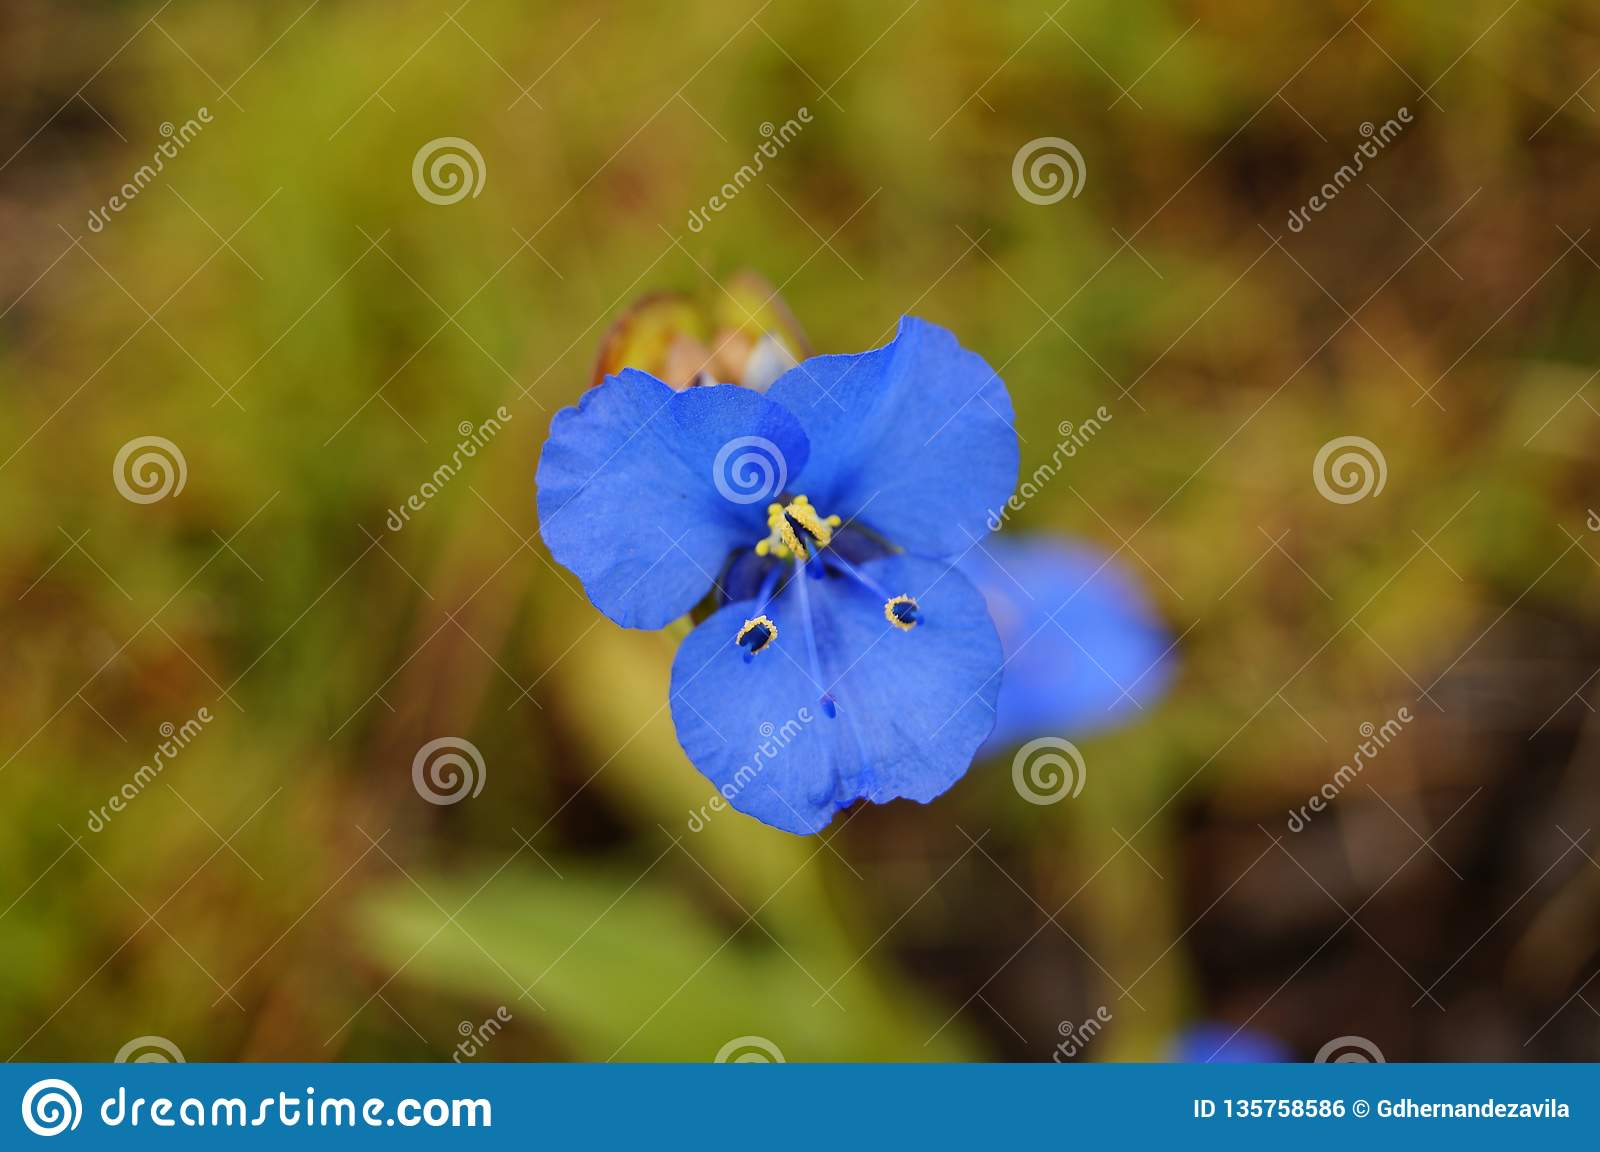 Small plant of blue petals shaped like a butterfly